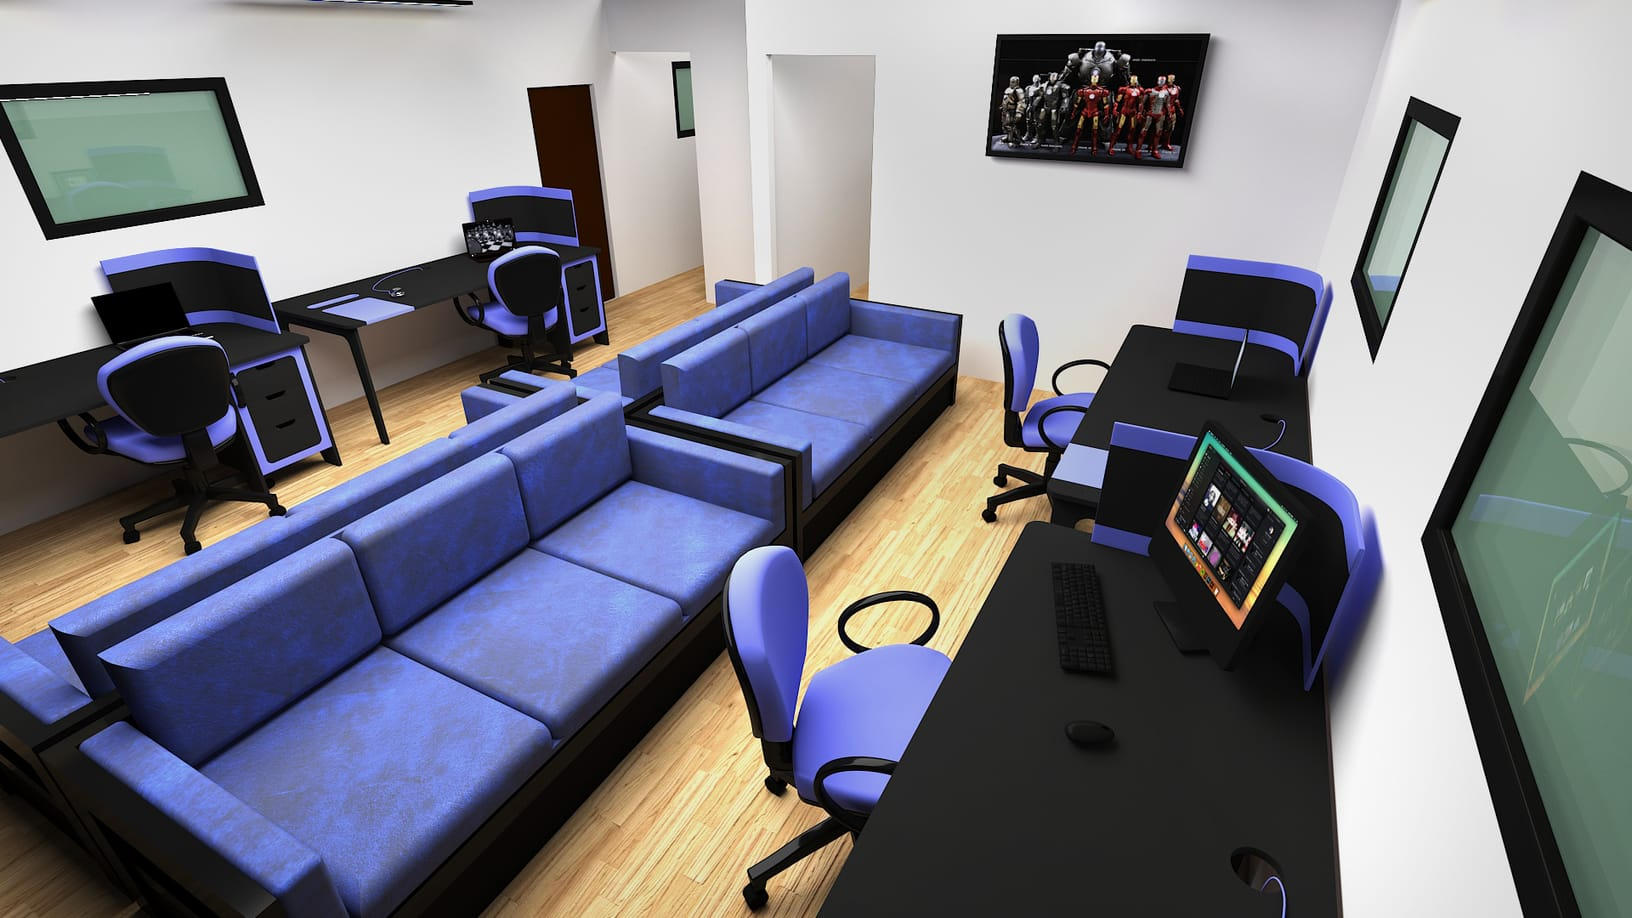 3D Product Visualisation of a office building